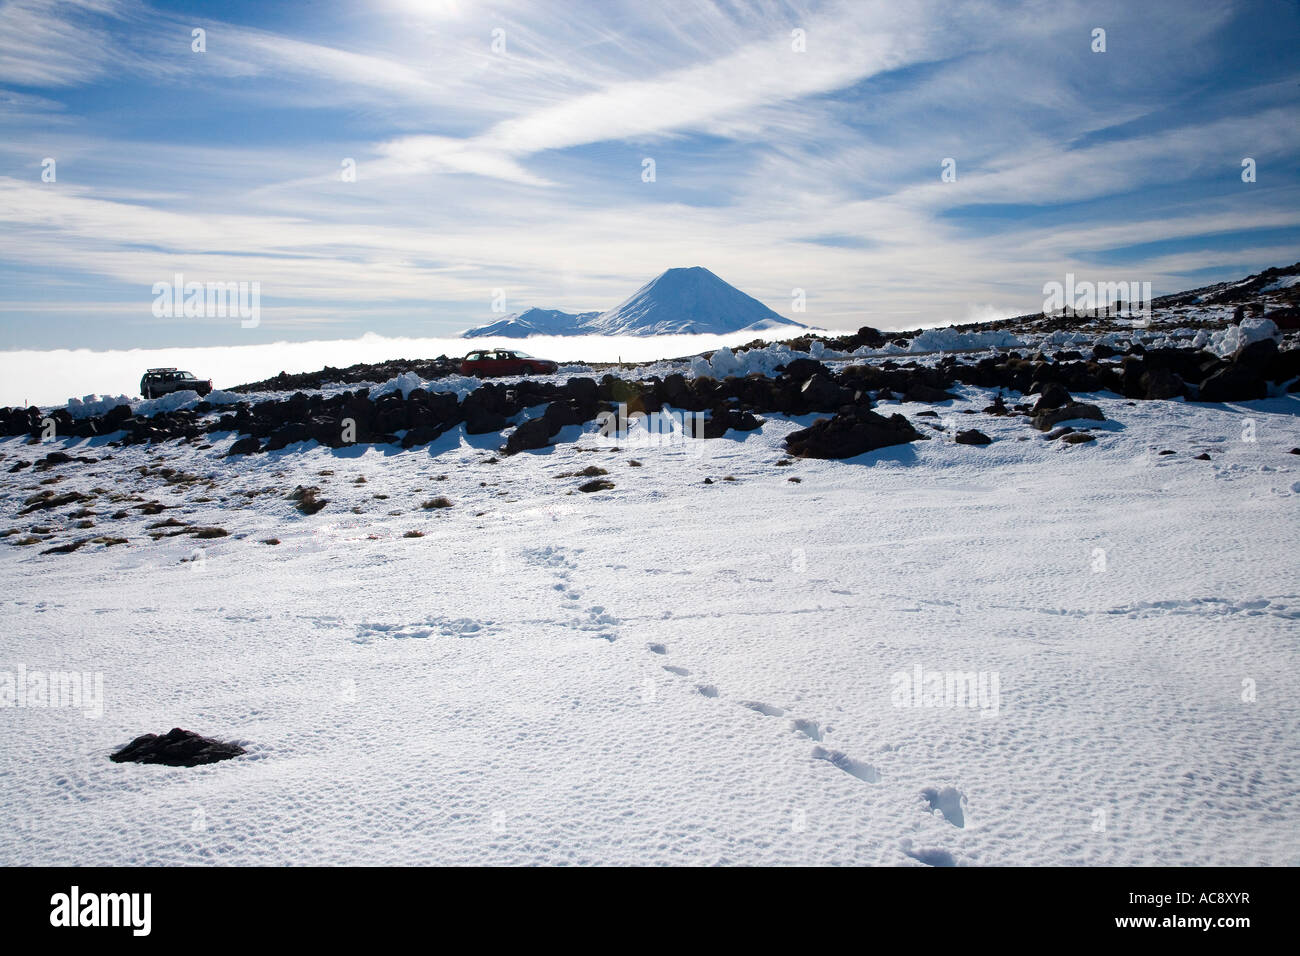 Footsteps in Snow and Mt Ngauruhoe Tongariro National Park Central Plateau North Island New Zealand - Stock Image